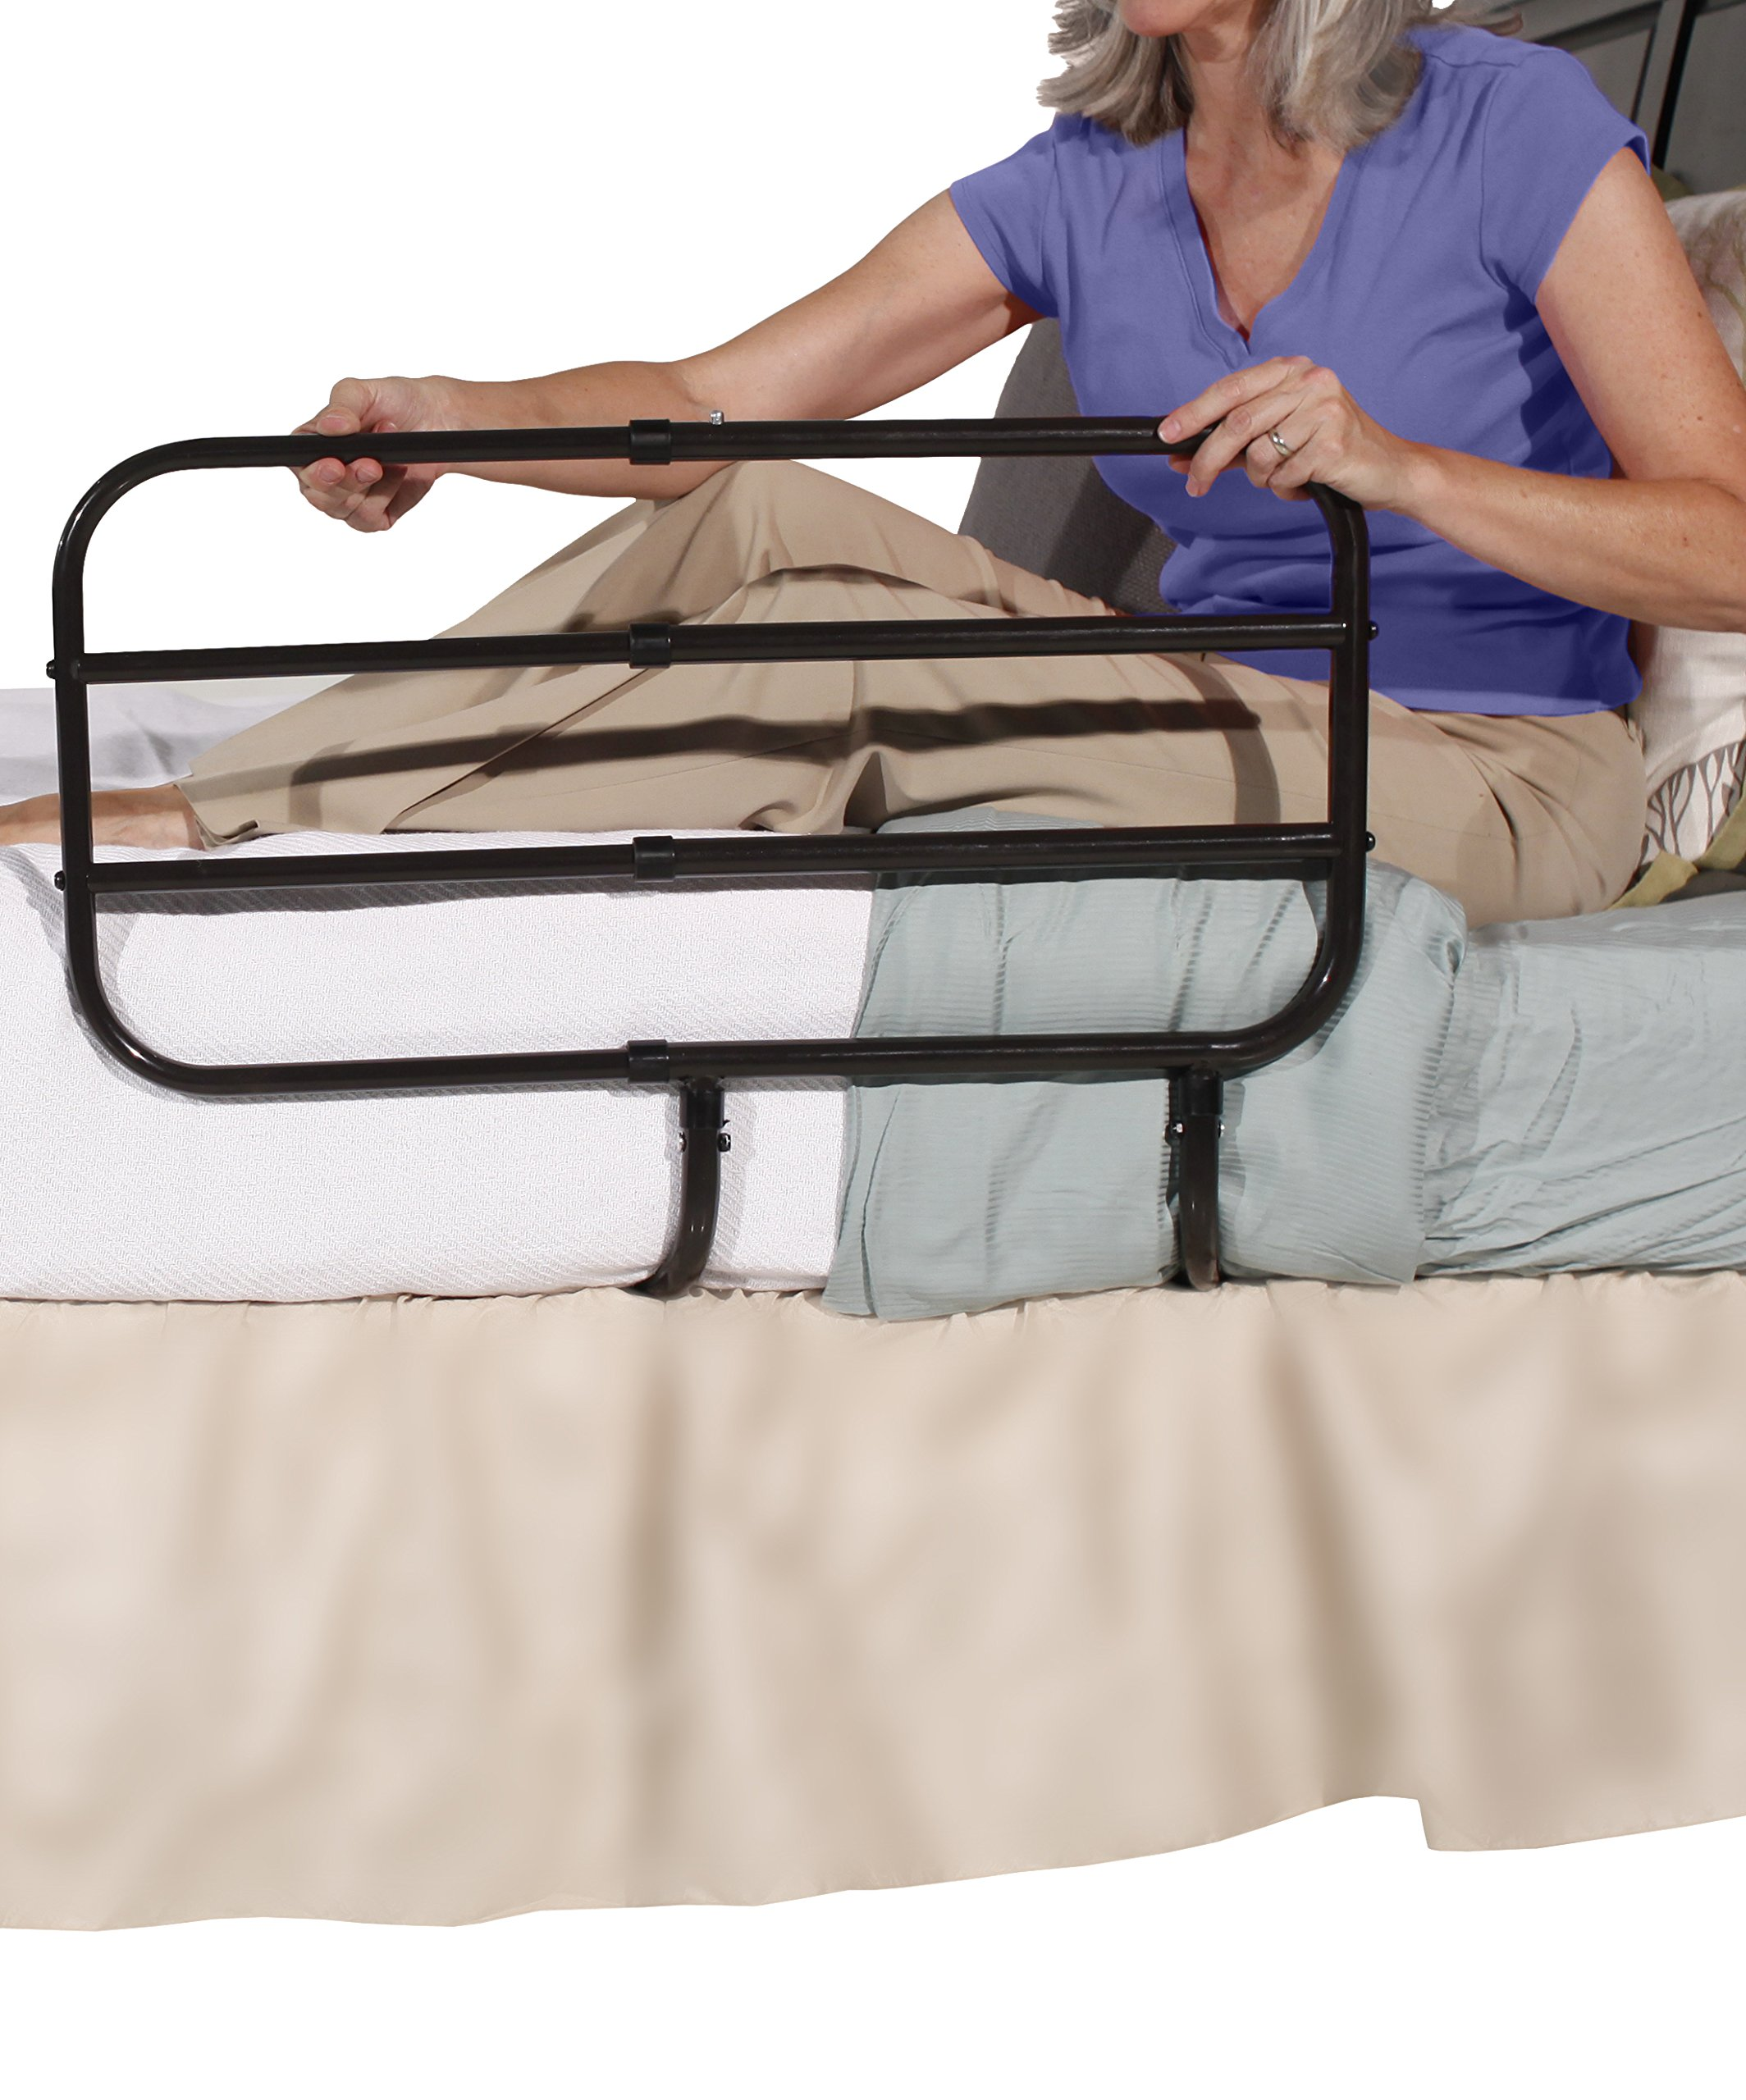 Able Life Bedside Extend-A-Rail - Adjustable Adult Home Safety Bed Rail + Elderly Assist Support Handle by Able Life